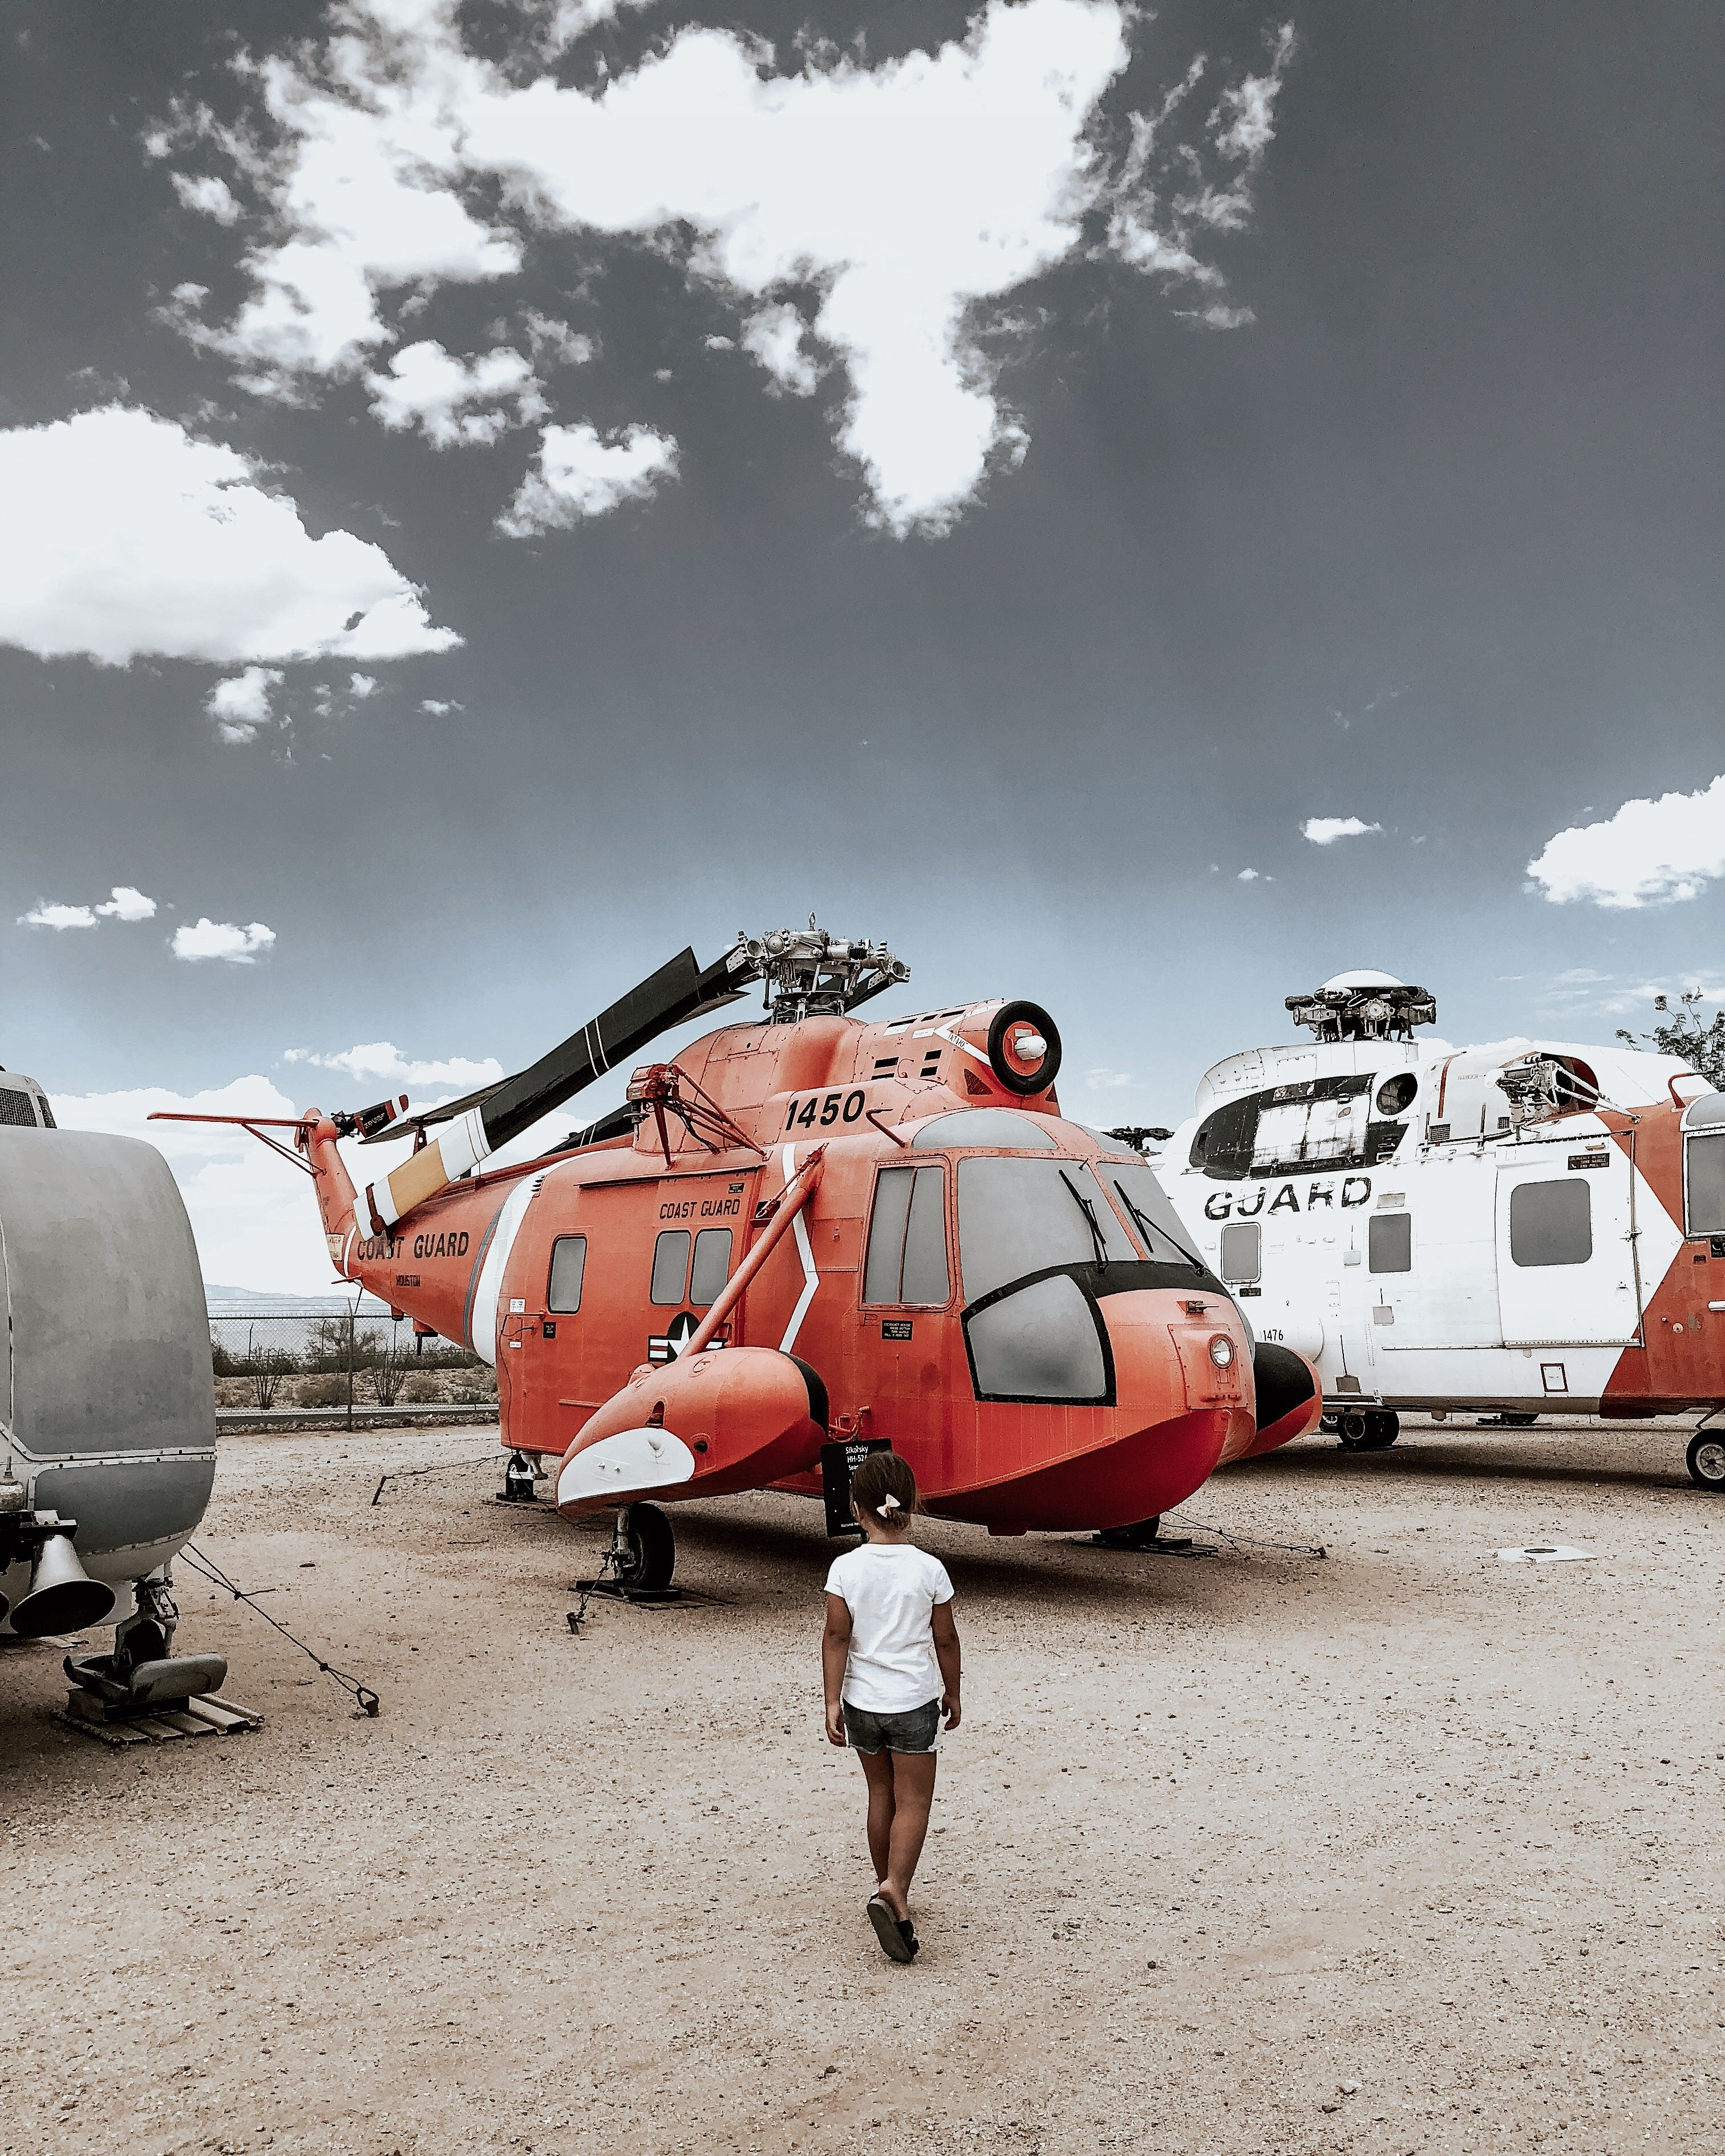 tucson pima air and space museum instagram arizona helicopter iphone rh pinterest com